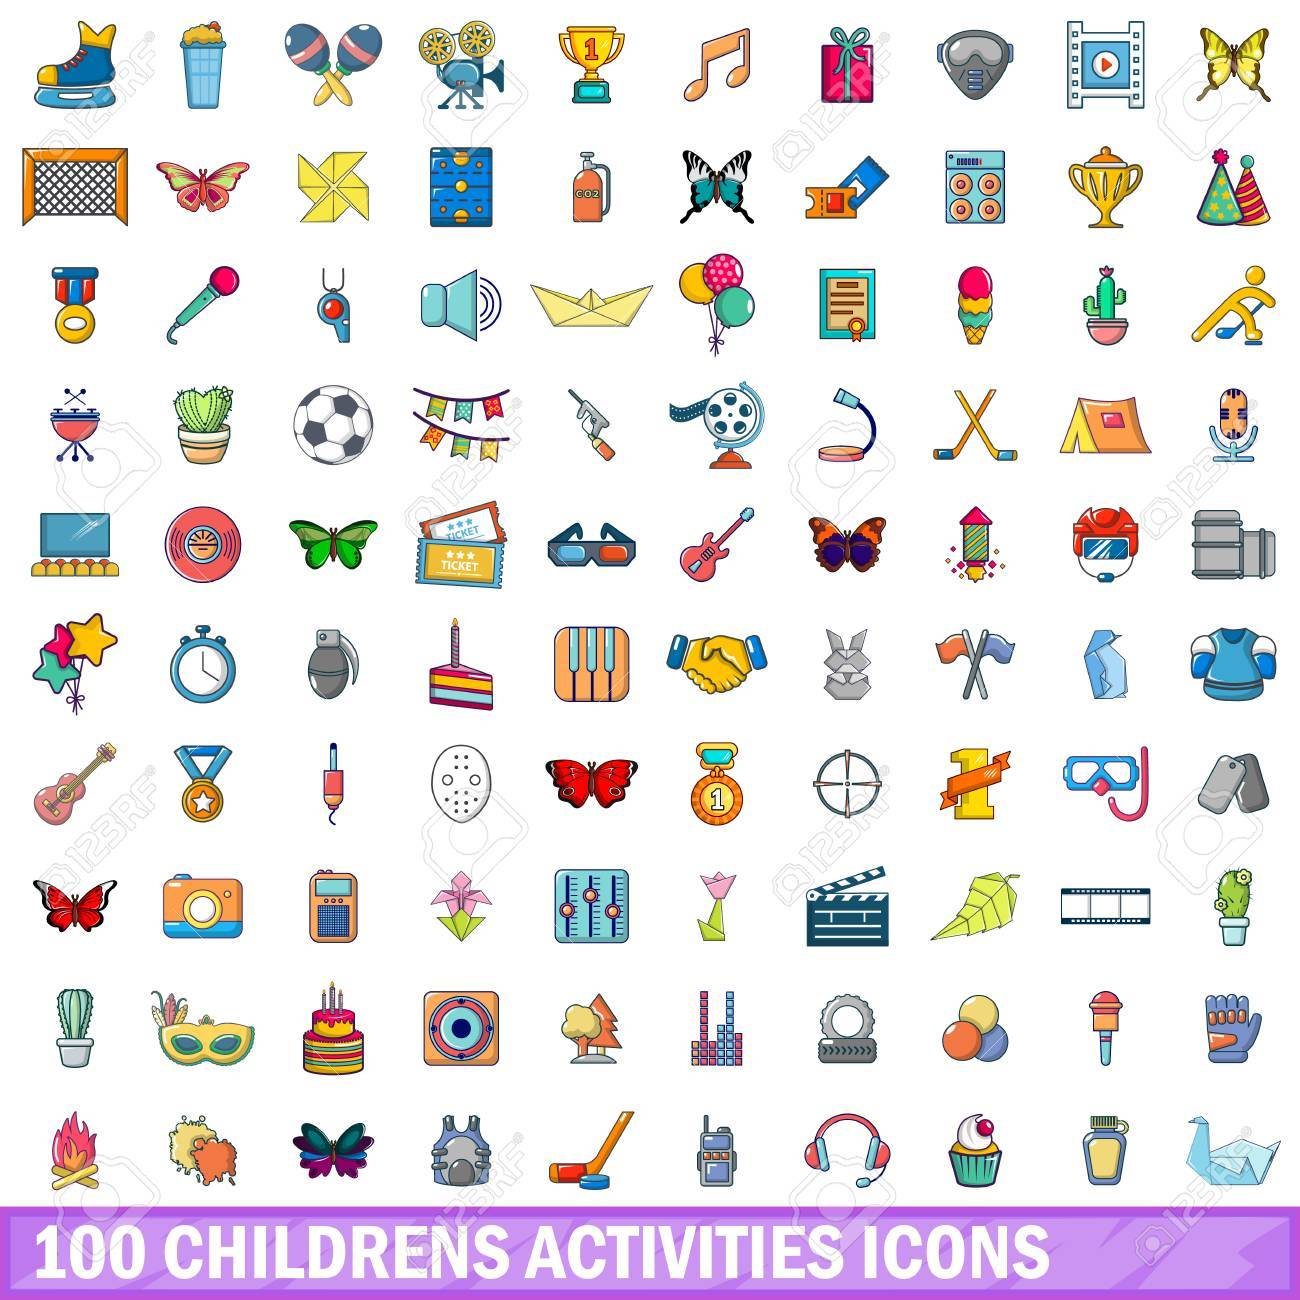 100 childrens activities icons set. Cartoon illustration of 100 childrens activities vector icons isolated on white background - 88751884